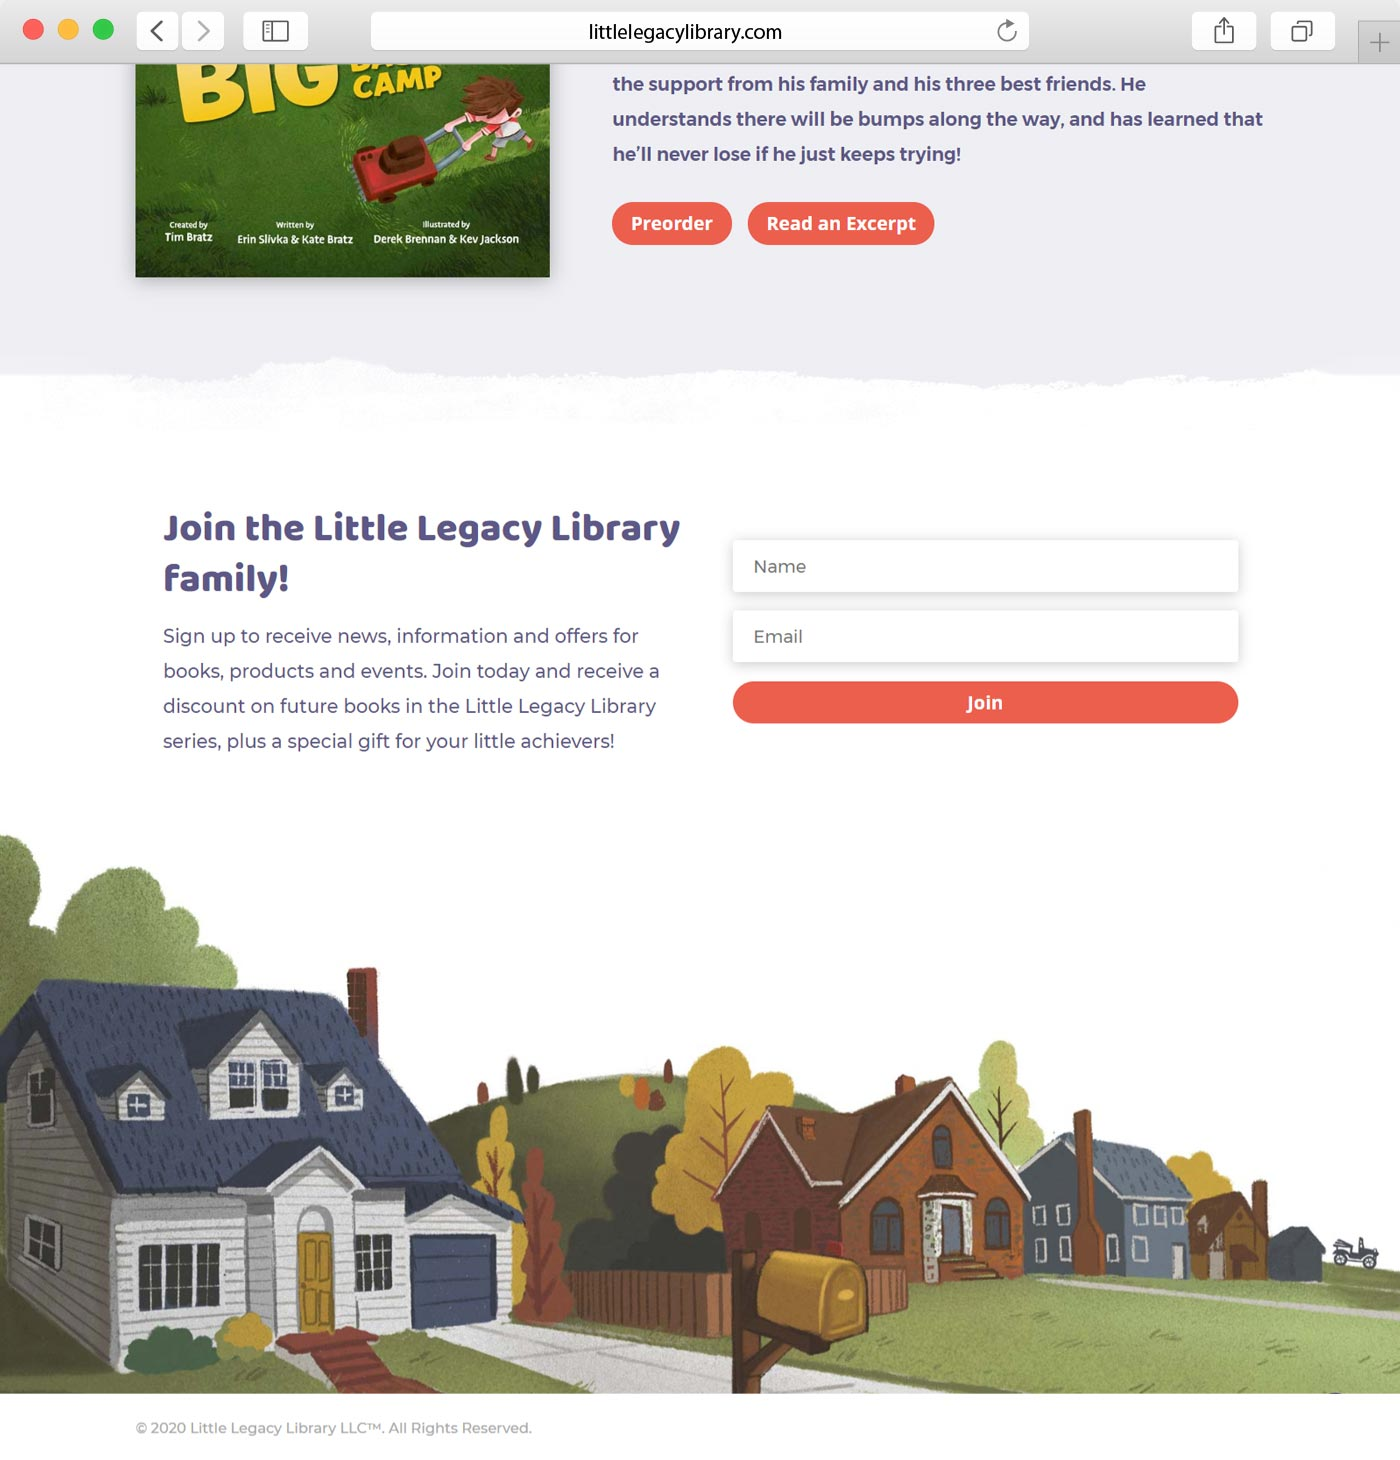 Little Legacy Library website design